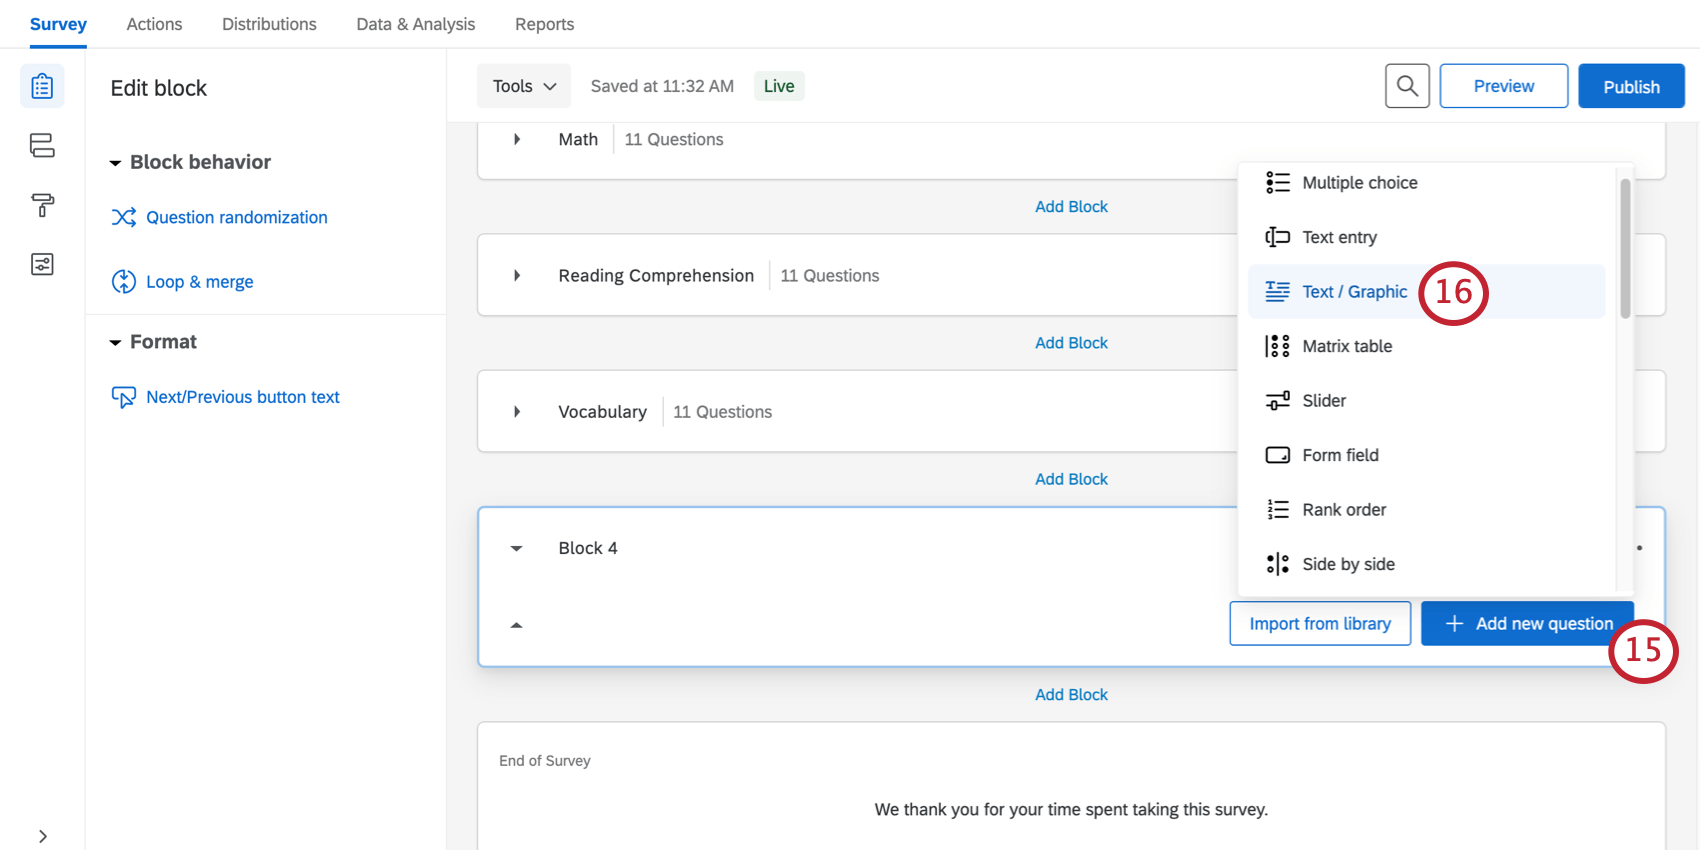 Add a new question button bottom-right of every block, once clicked shows a list of question types